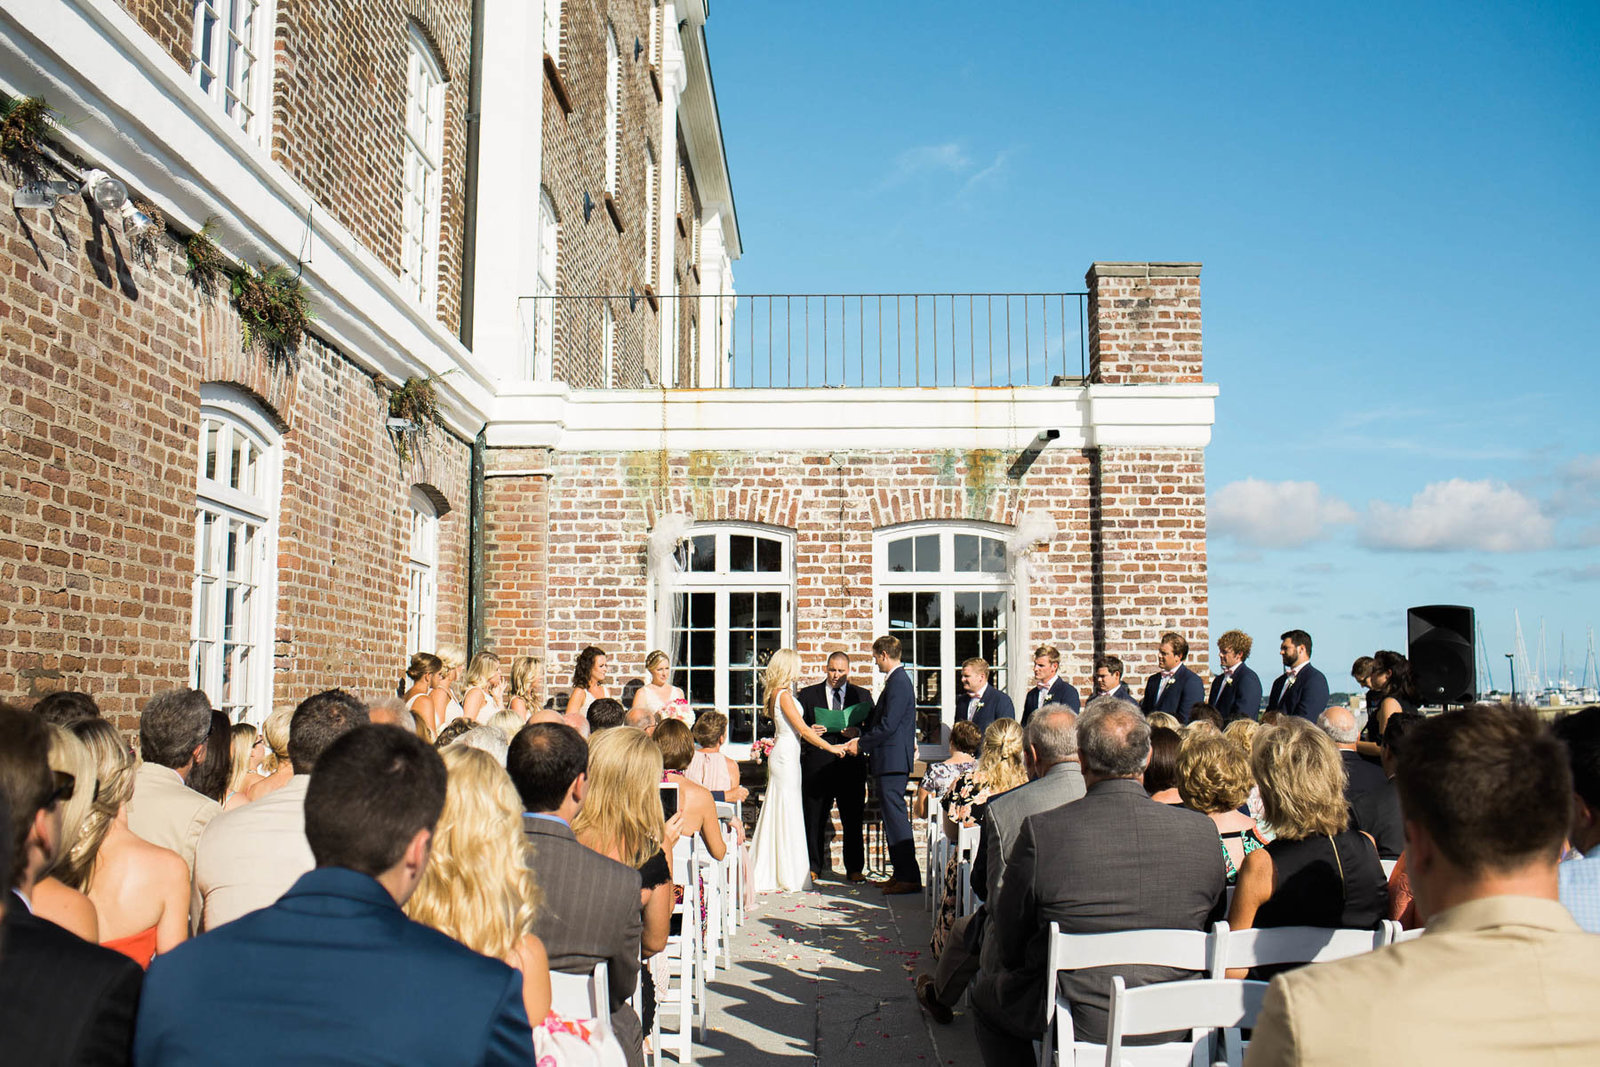 Bride and groom exchange vows, Rice Mill Building, Charleston, South Carolina